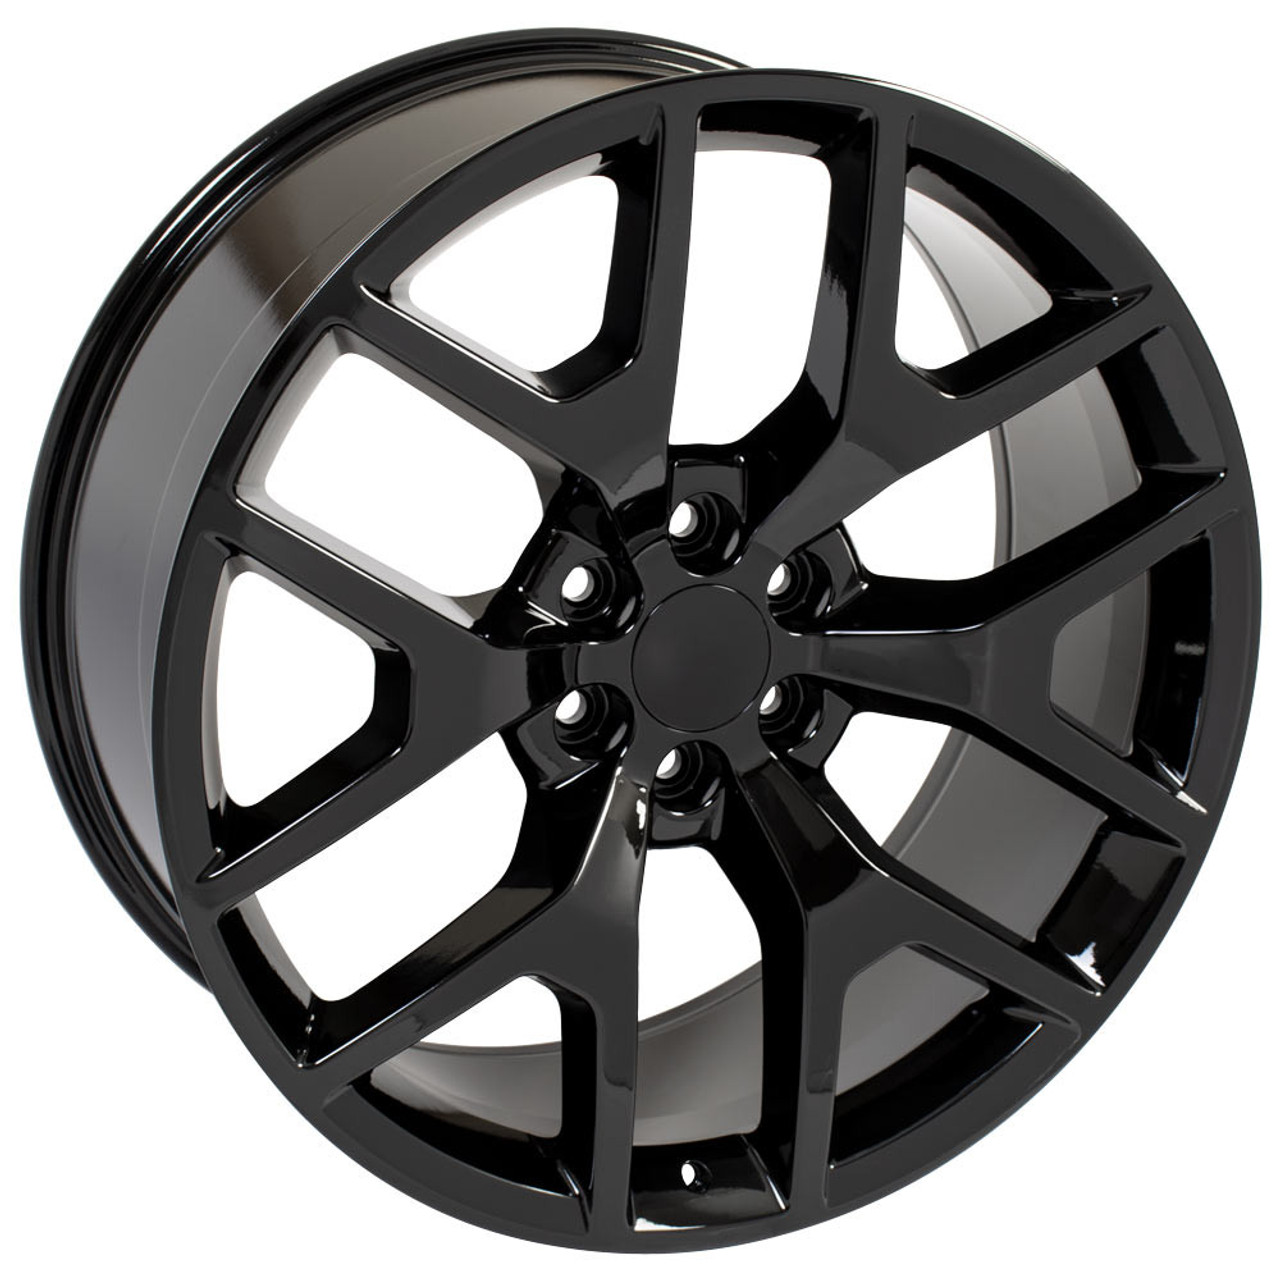 """Gloss Black 24"""" Honeycomb Wheels with 295/35R24 Tires for Chevy and GMC Trucks and SUVs"""